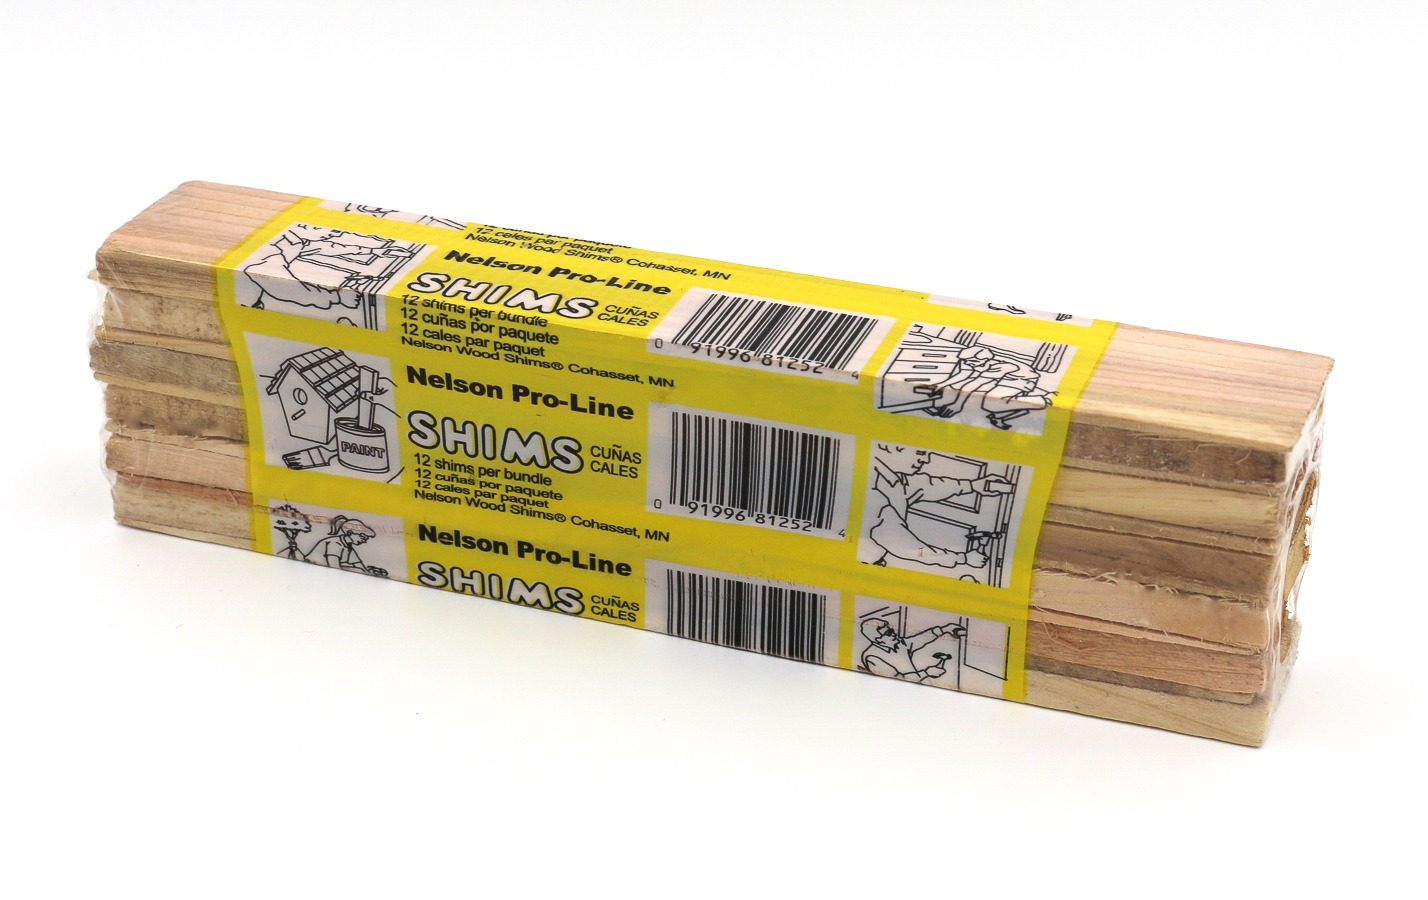 A 12-count bundle of the Nelson Wood Shims Pro line shims